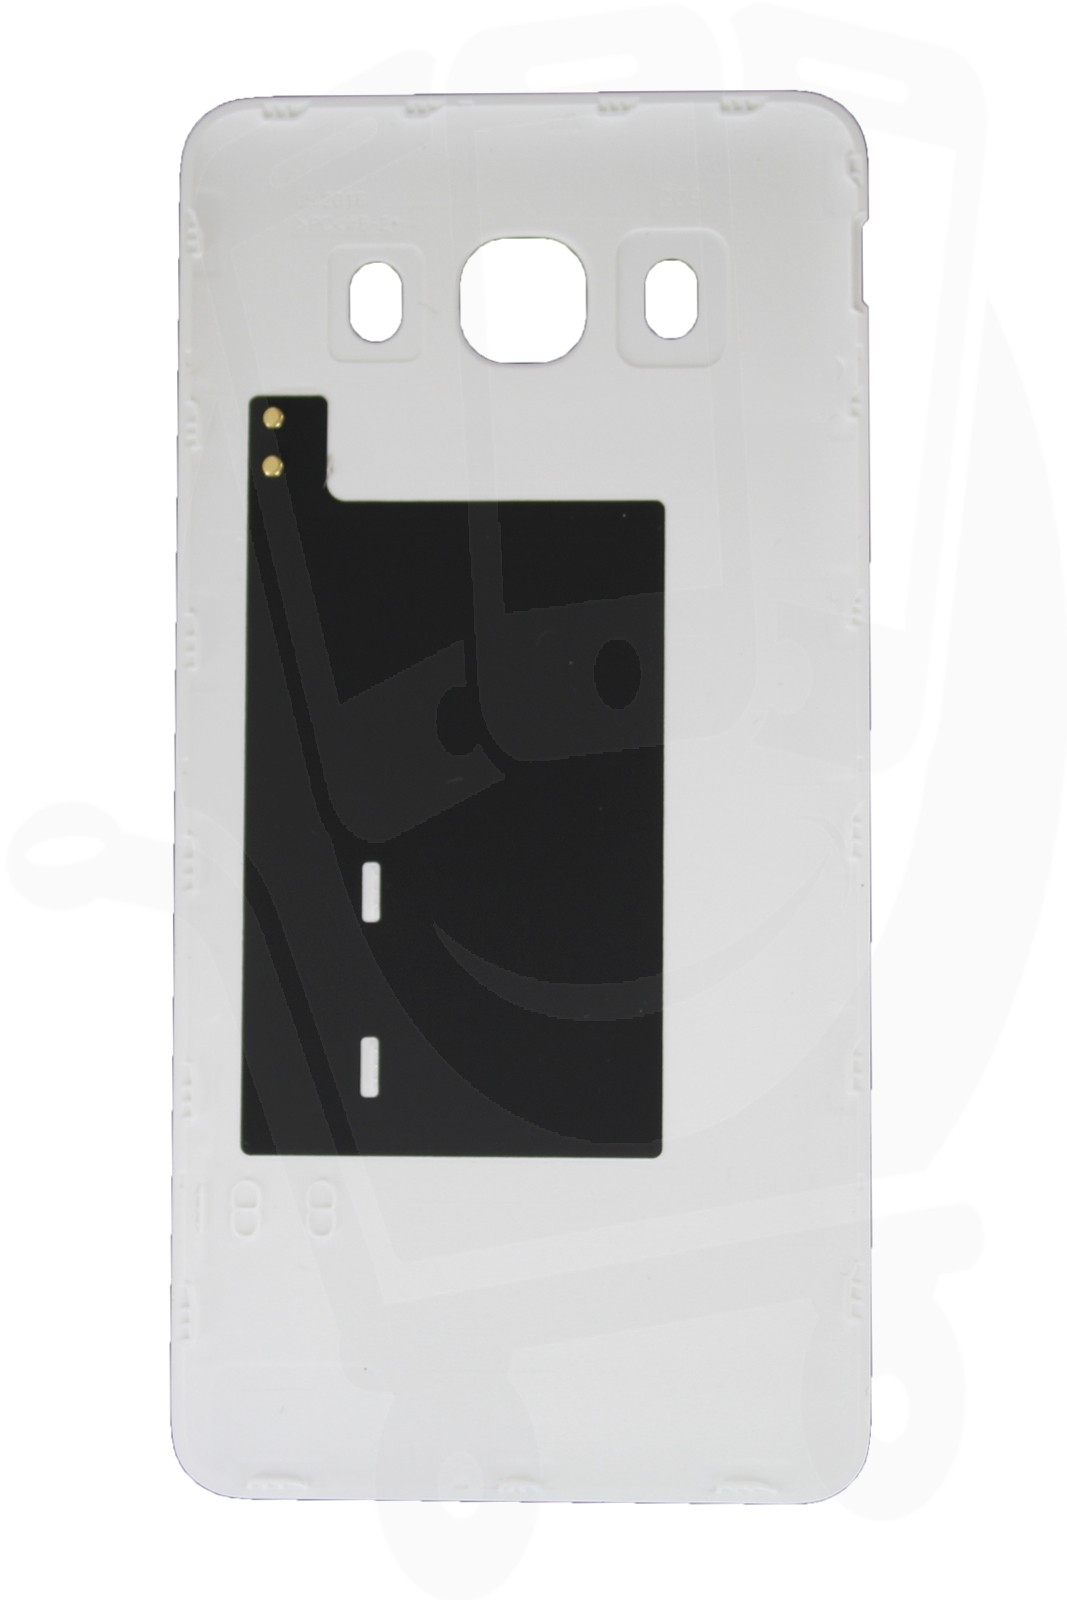 genuine samsung galaxy j5 2016 sm j510 white battery cover gh98 39741c. Black Bedroom Furniture Sets. Home Design Ideas